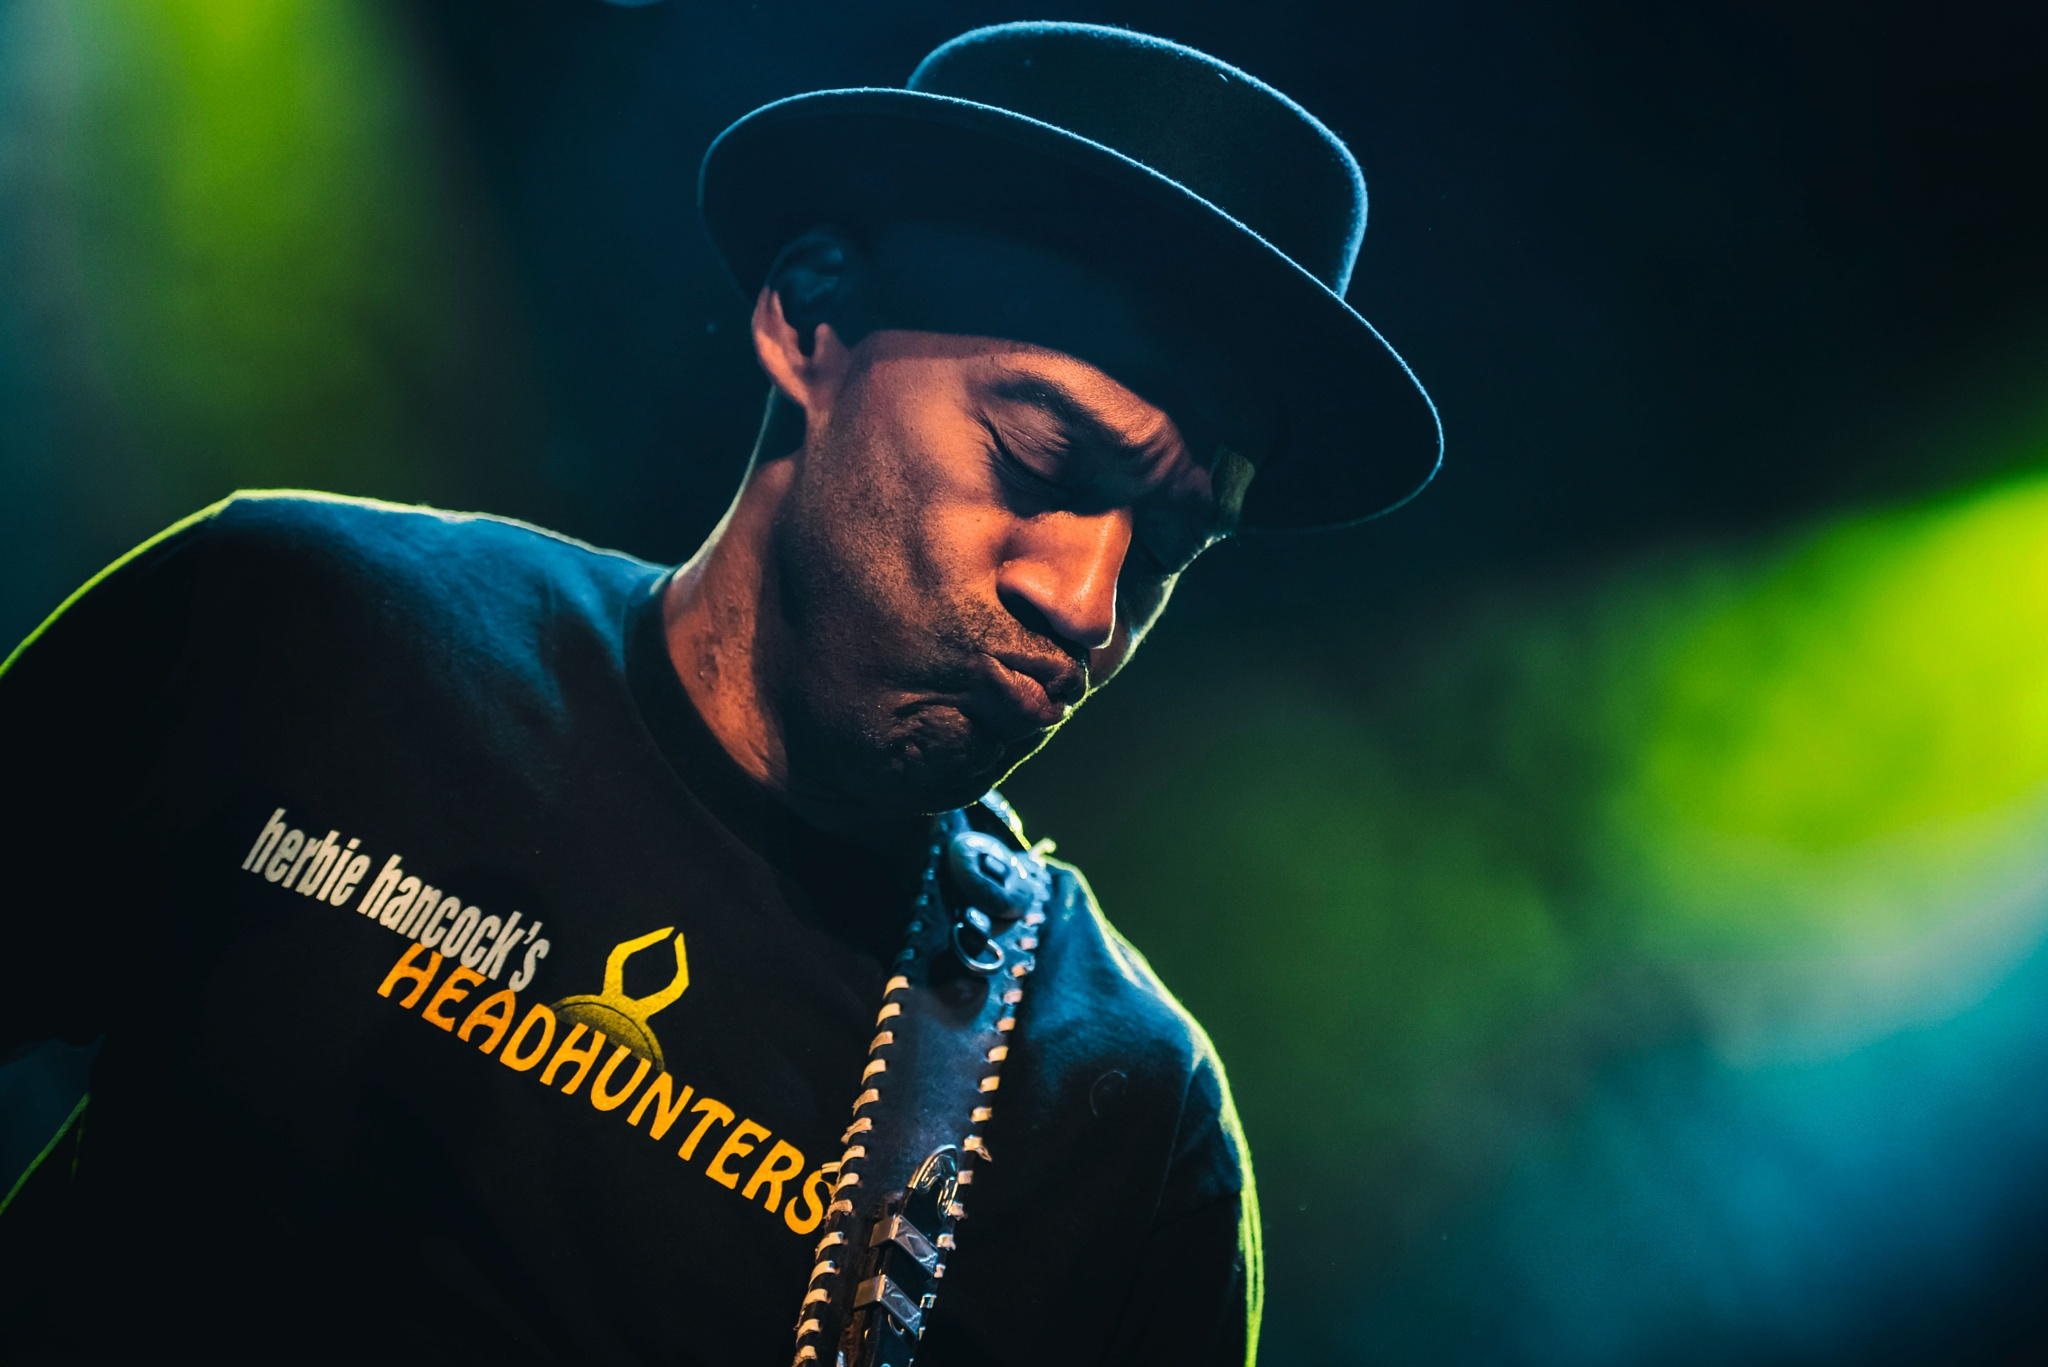 Marcus Miller by r.baranovic